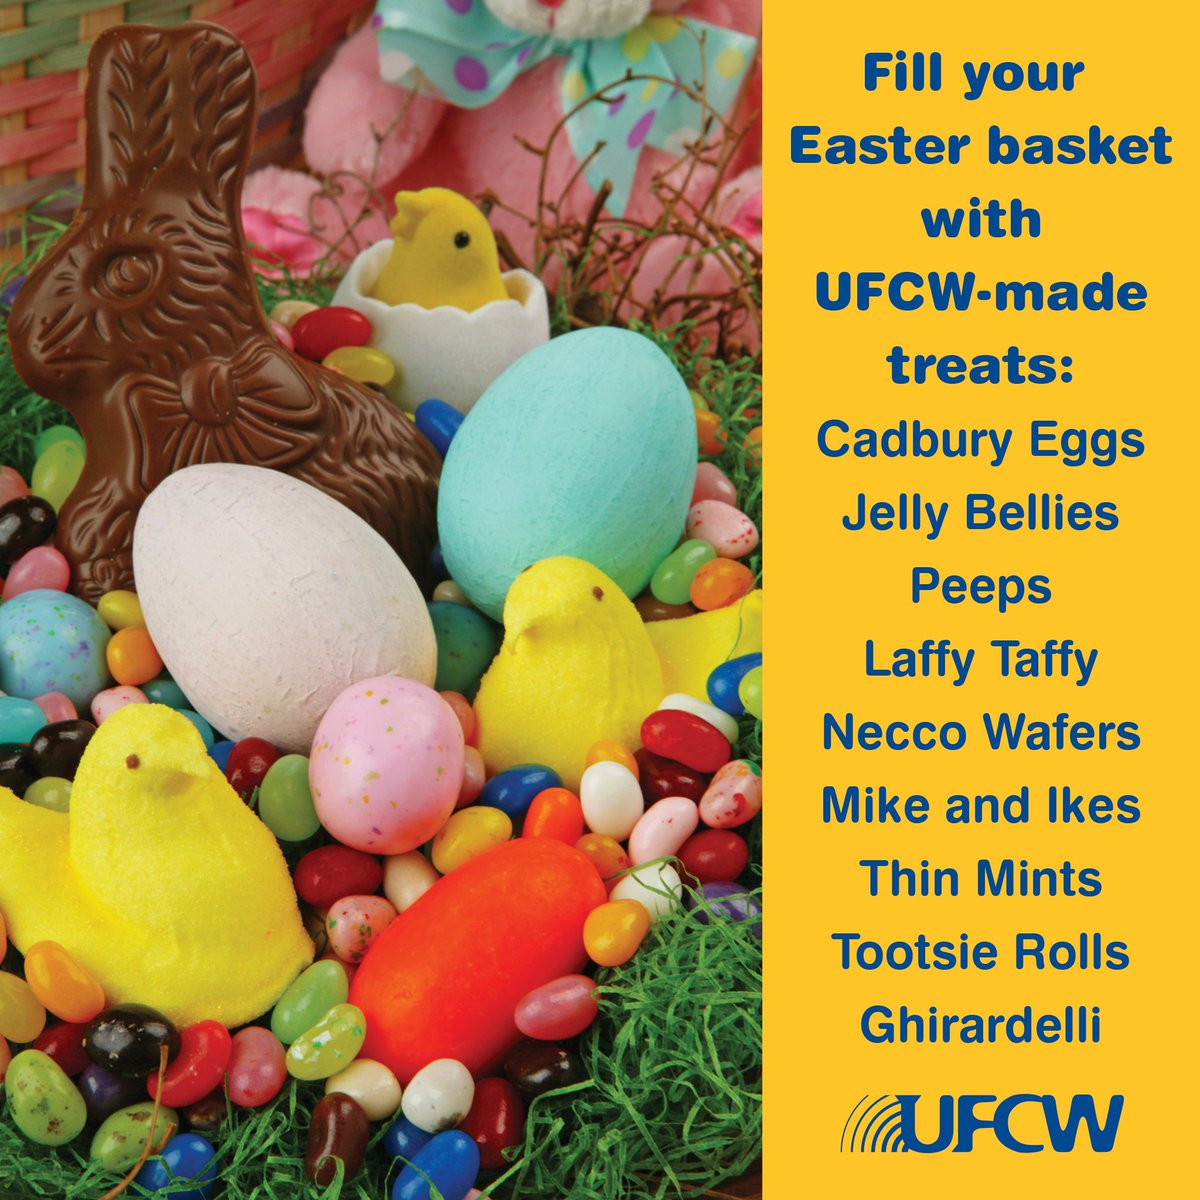 Support your brothers and sisters by shopping union-made this Easter! https://t.co/6iXOeQ4No9